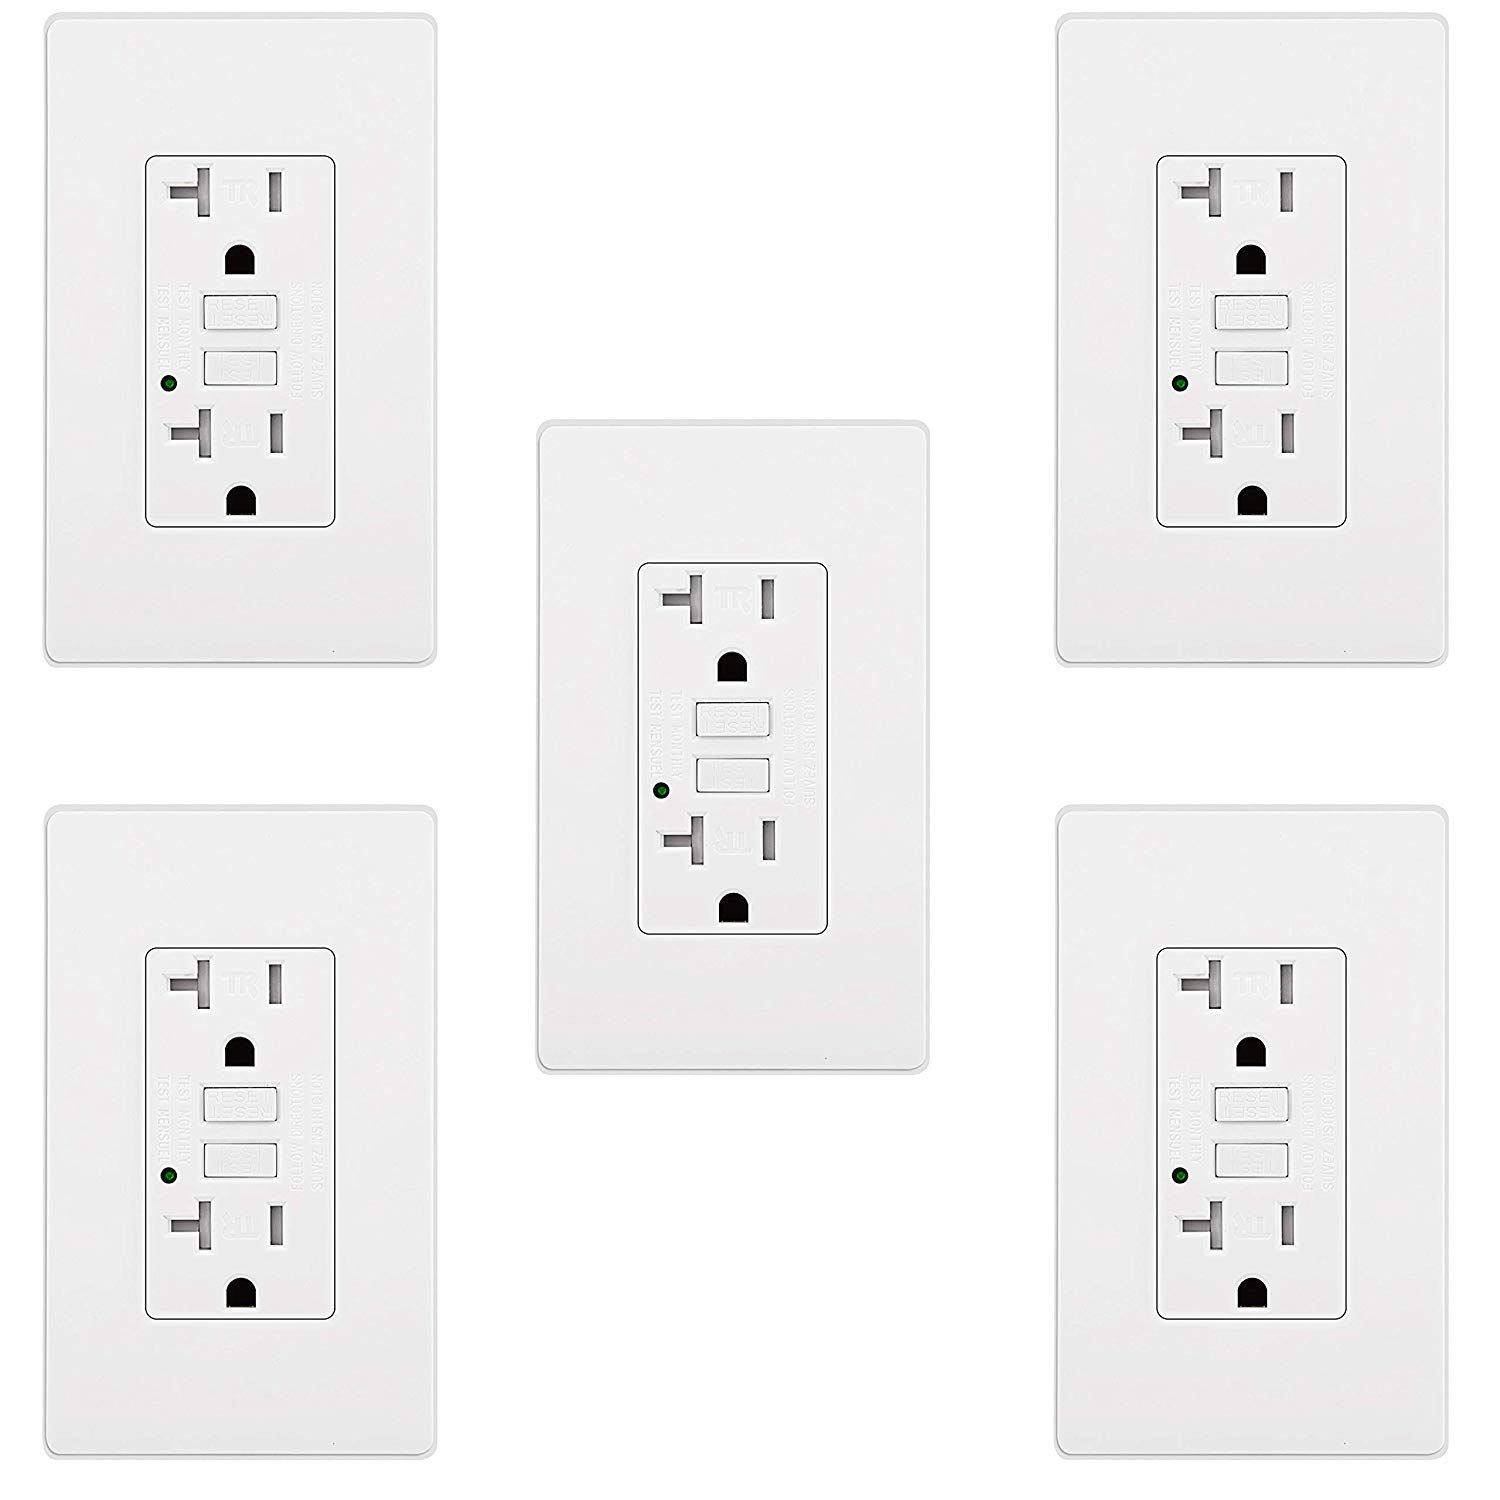 5 Pack Bestten Gfci Receptacle Tamper Resistant Outlets 20amp 125volt Led Indicator 2 Types Wall Plates And Screws Included Etl Gfci Receptacles Tampers